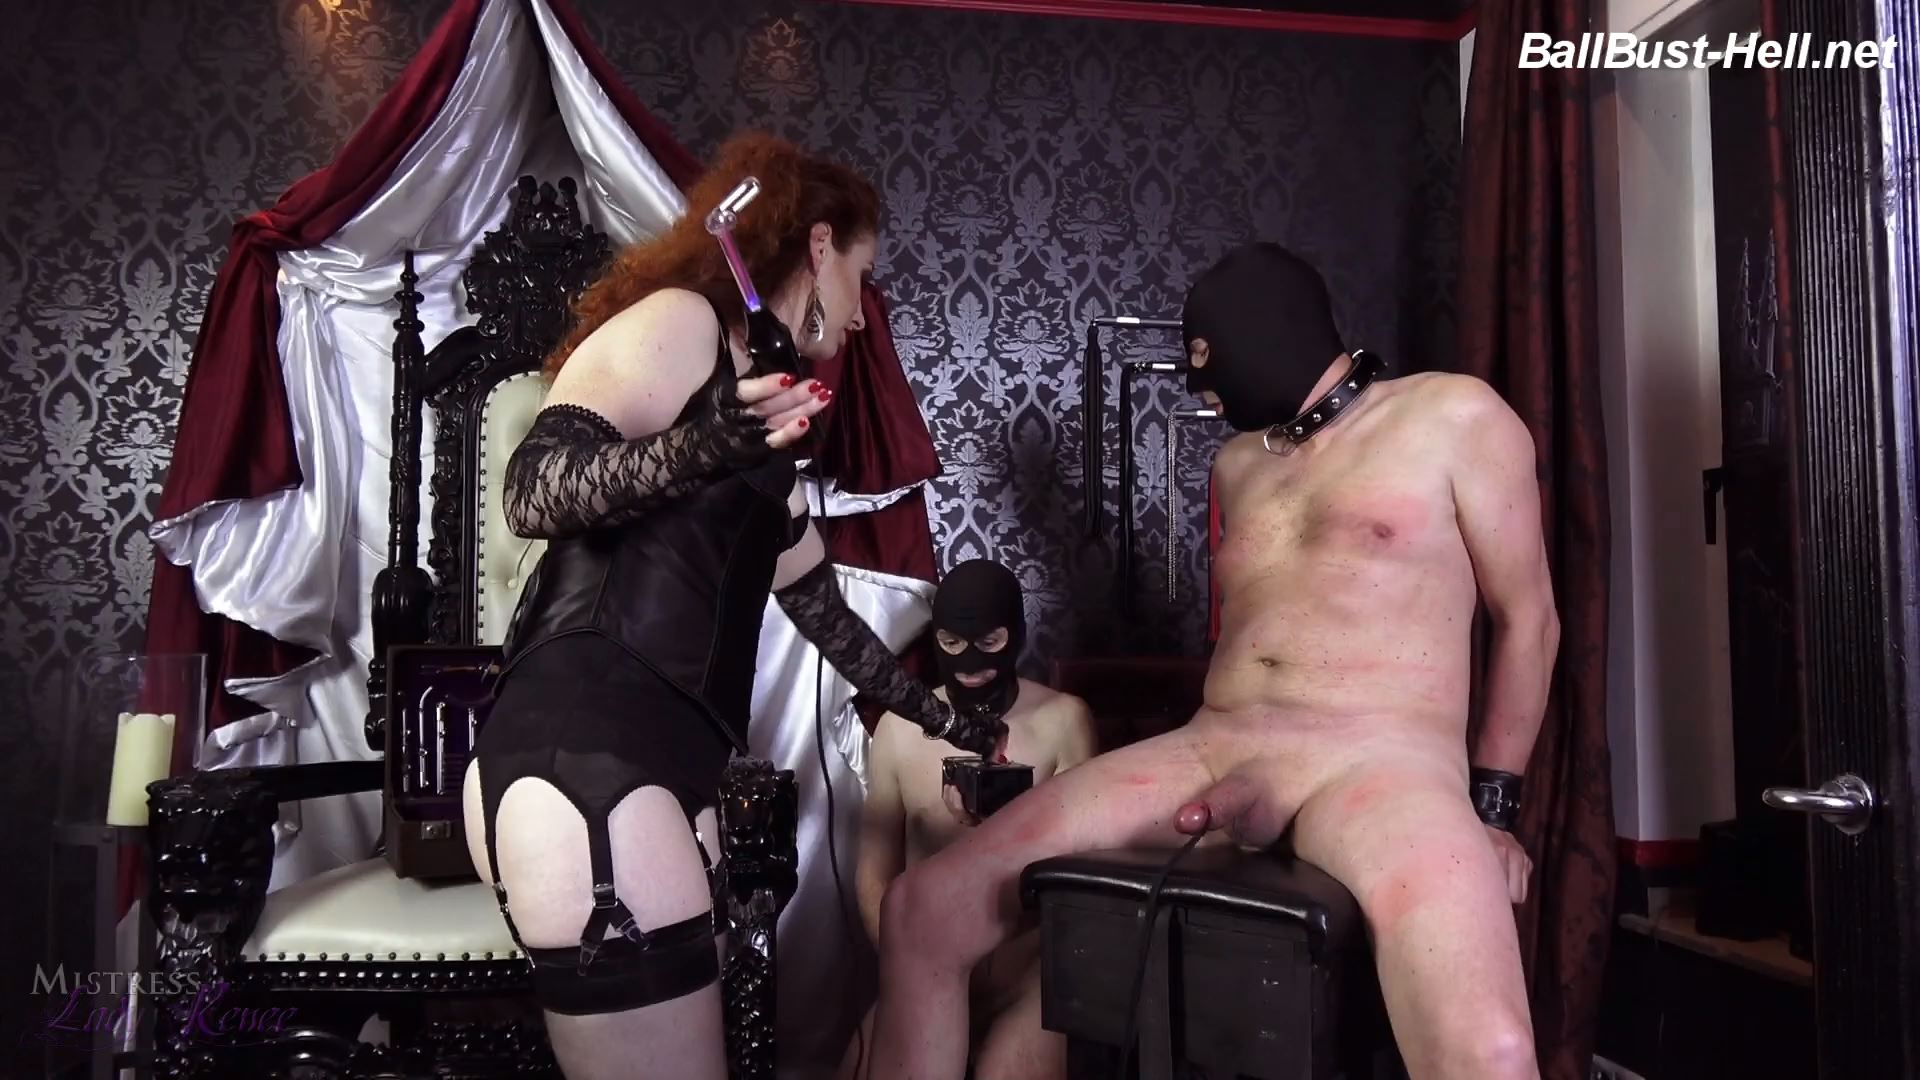 Mistress Lady Renee In Scene: Electro nipples and cock - MistressLadyRenee - FULL HD/1080p/MP4